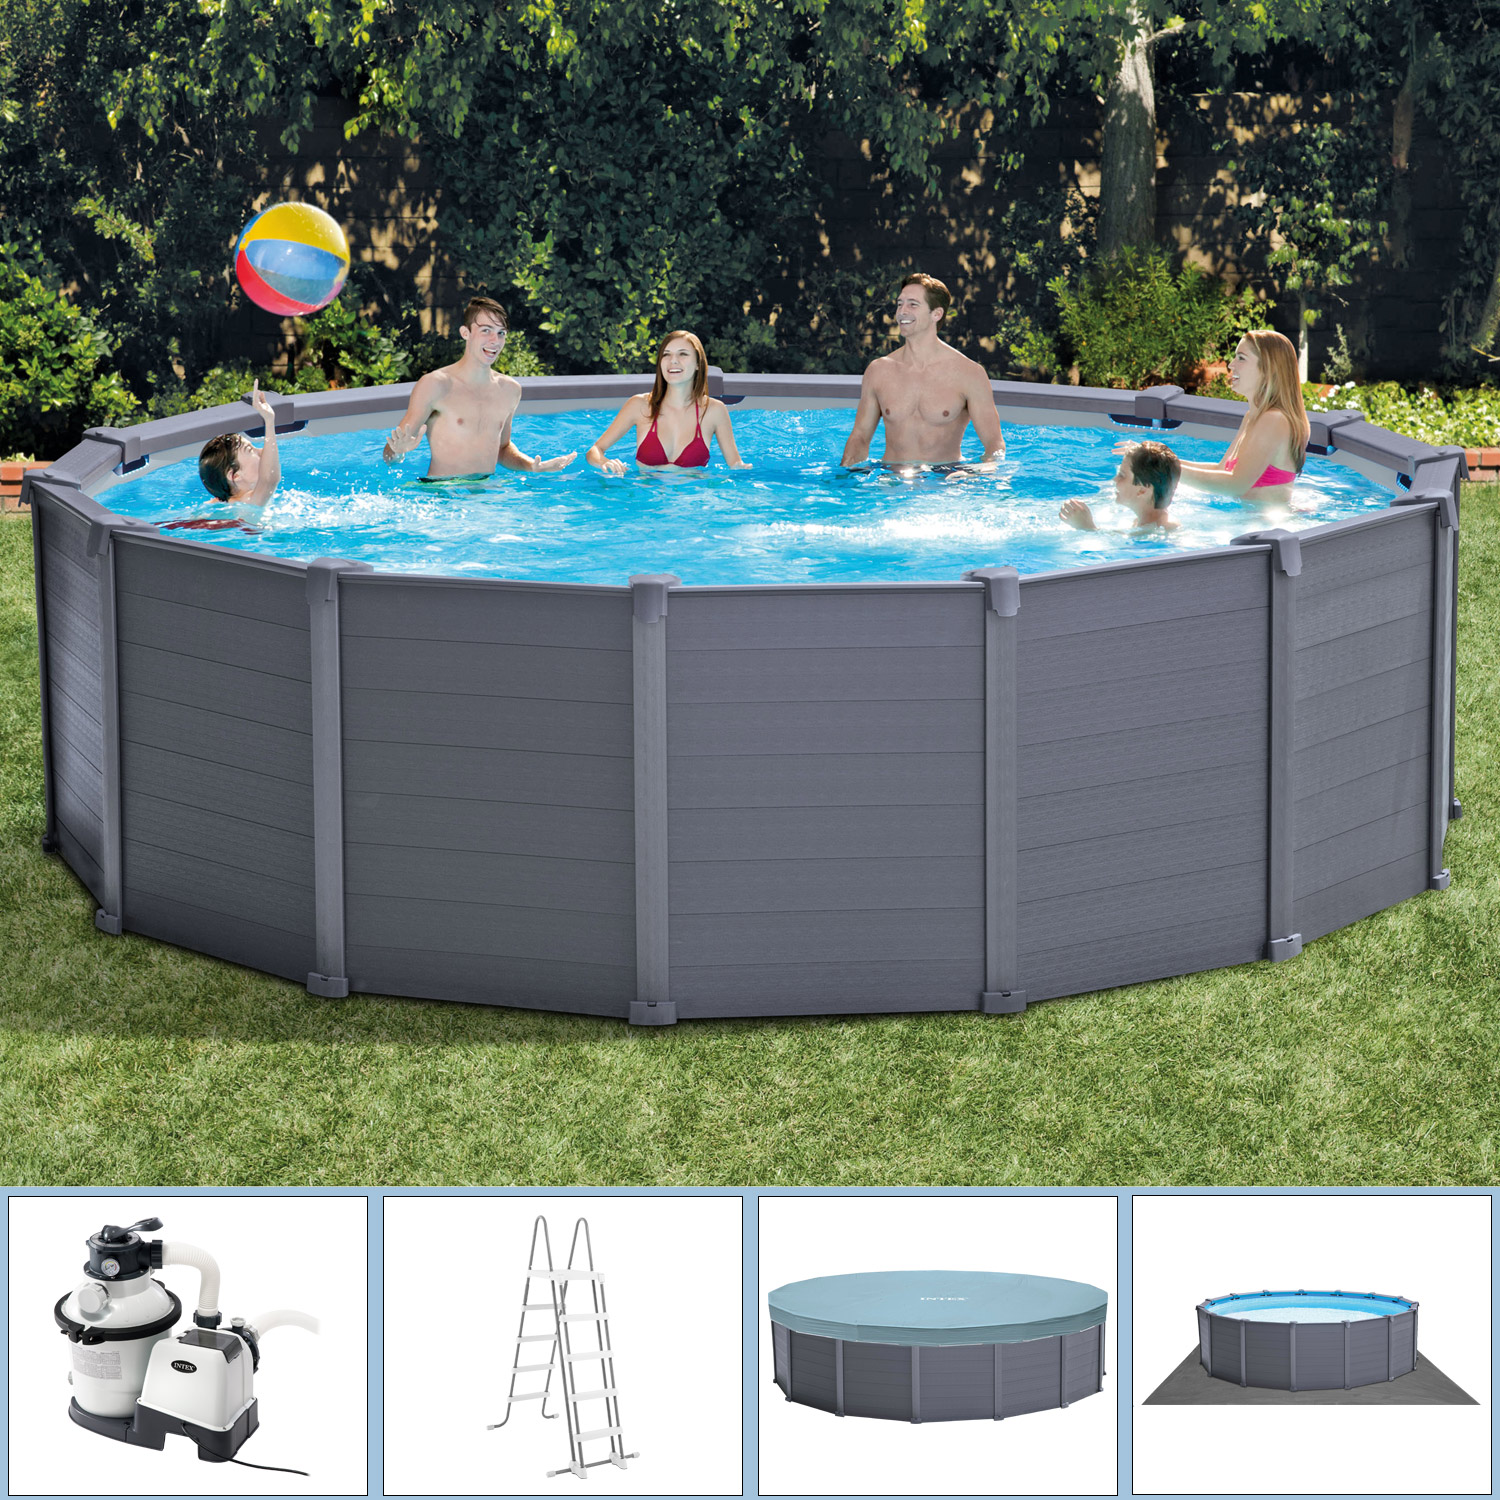 Pool Rund Komplett Intex Ø 478 X 124 Cm Frame Pool Komplett Set Graphit Mit